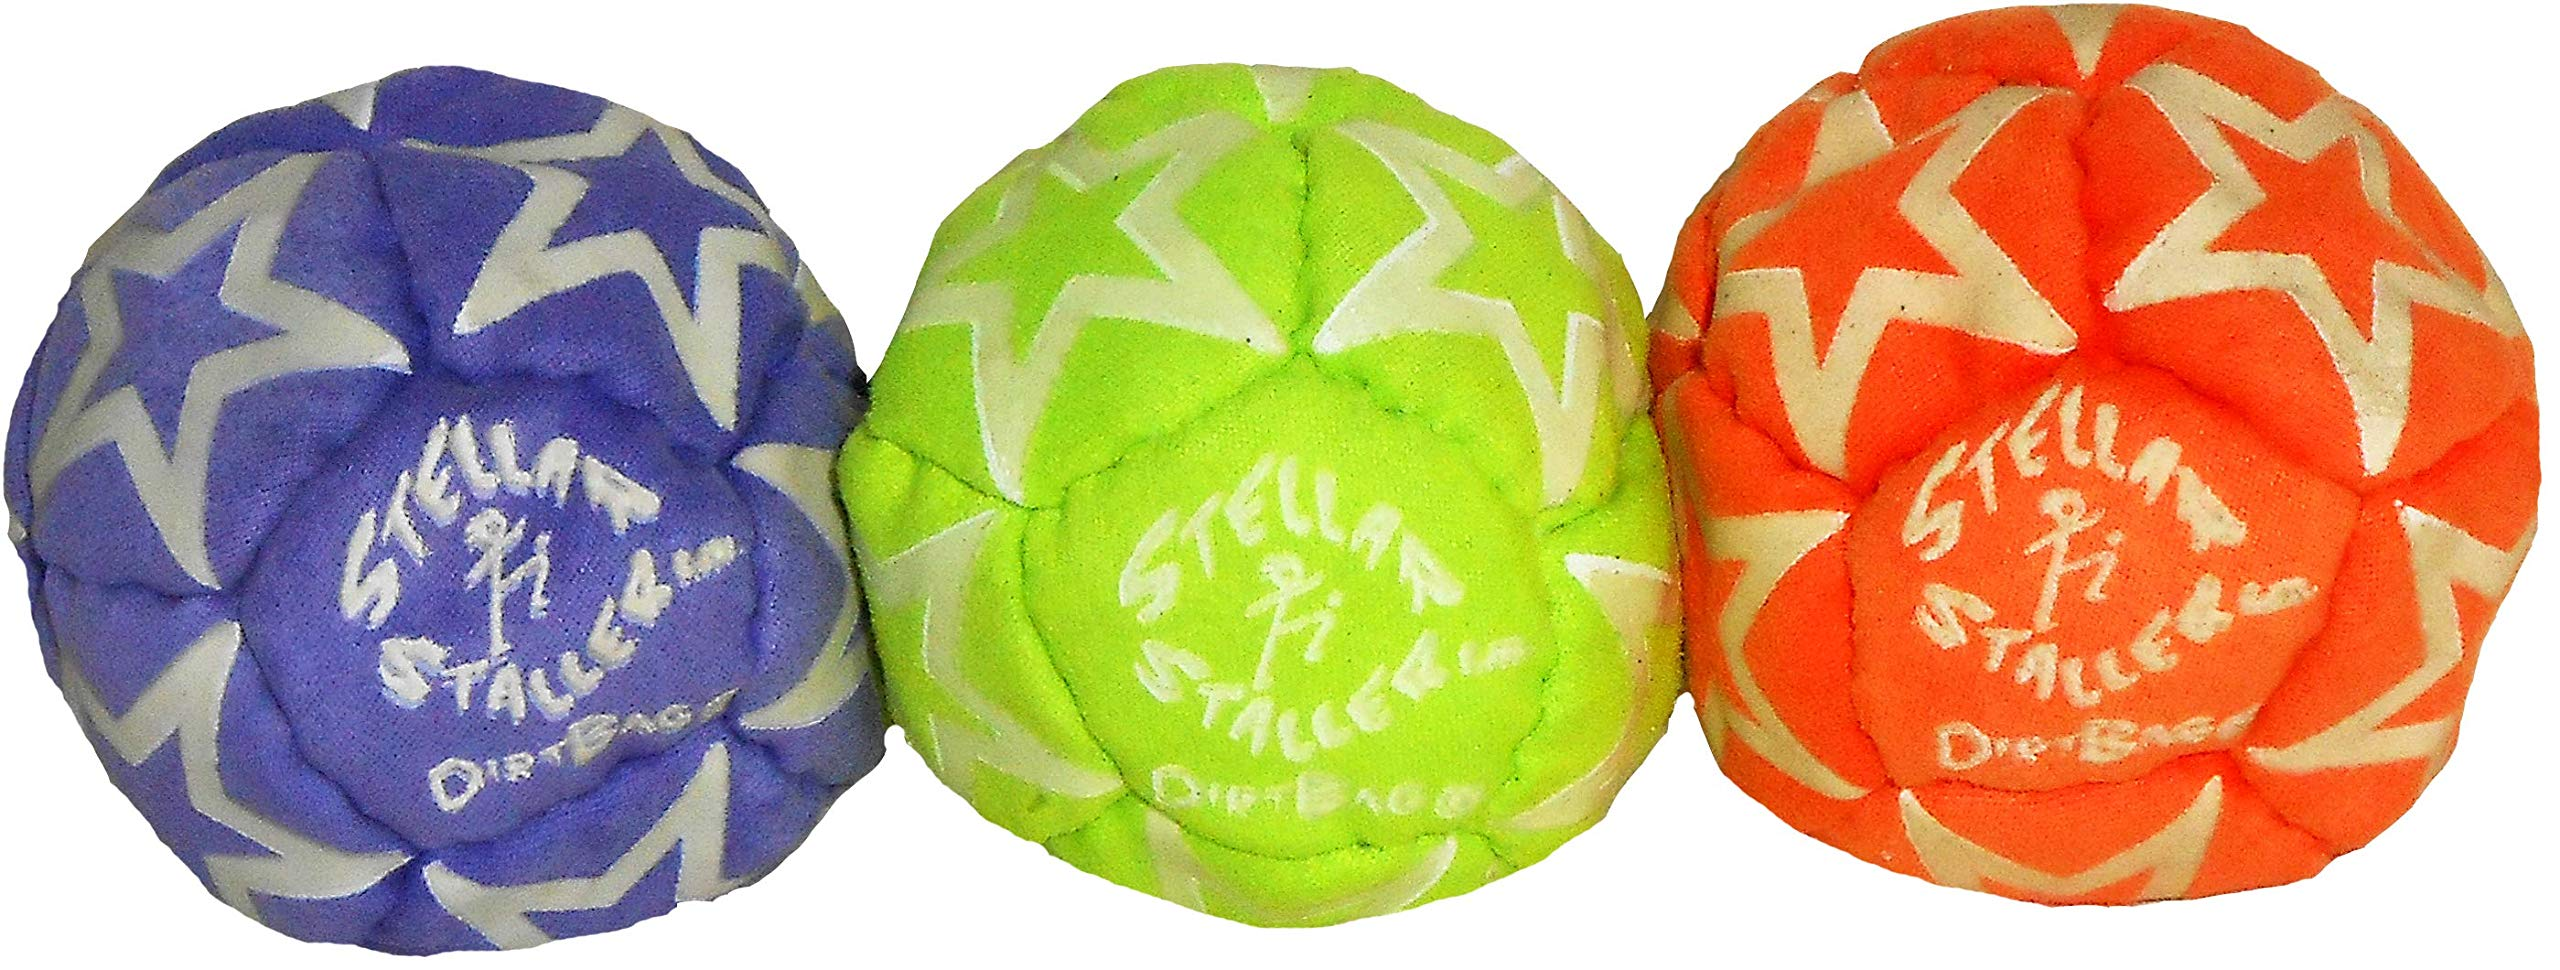 Stellar Staller Glow-in-the-Dark Footbag 3-Pack